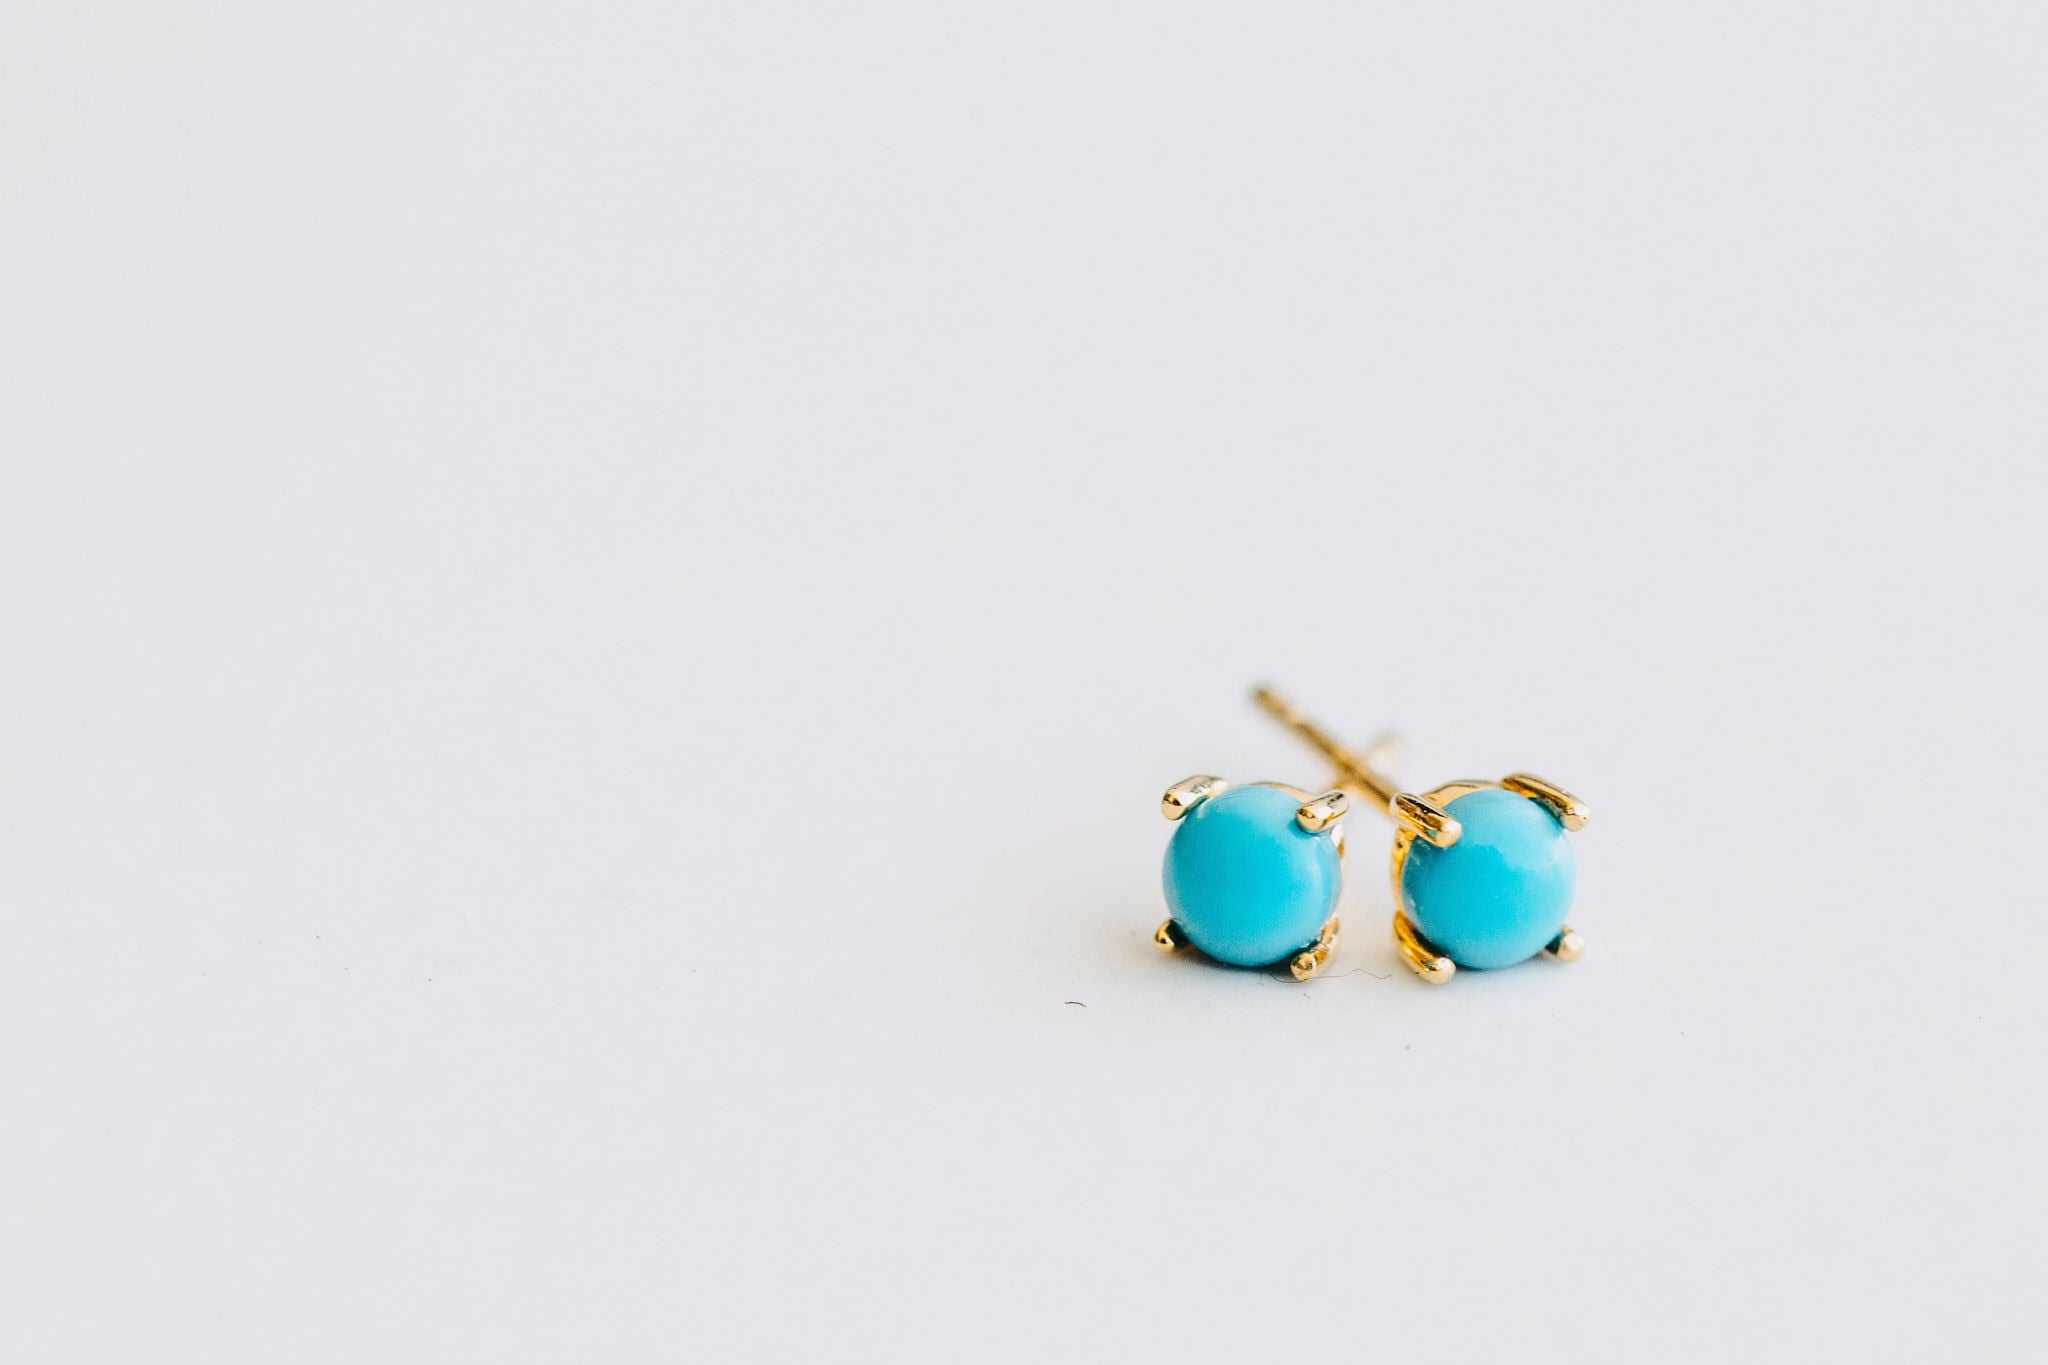 Castle rock turquoise stud earrings, sterling silver, yellow gold plated